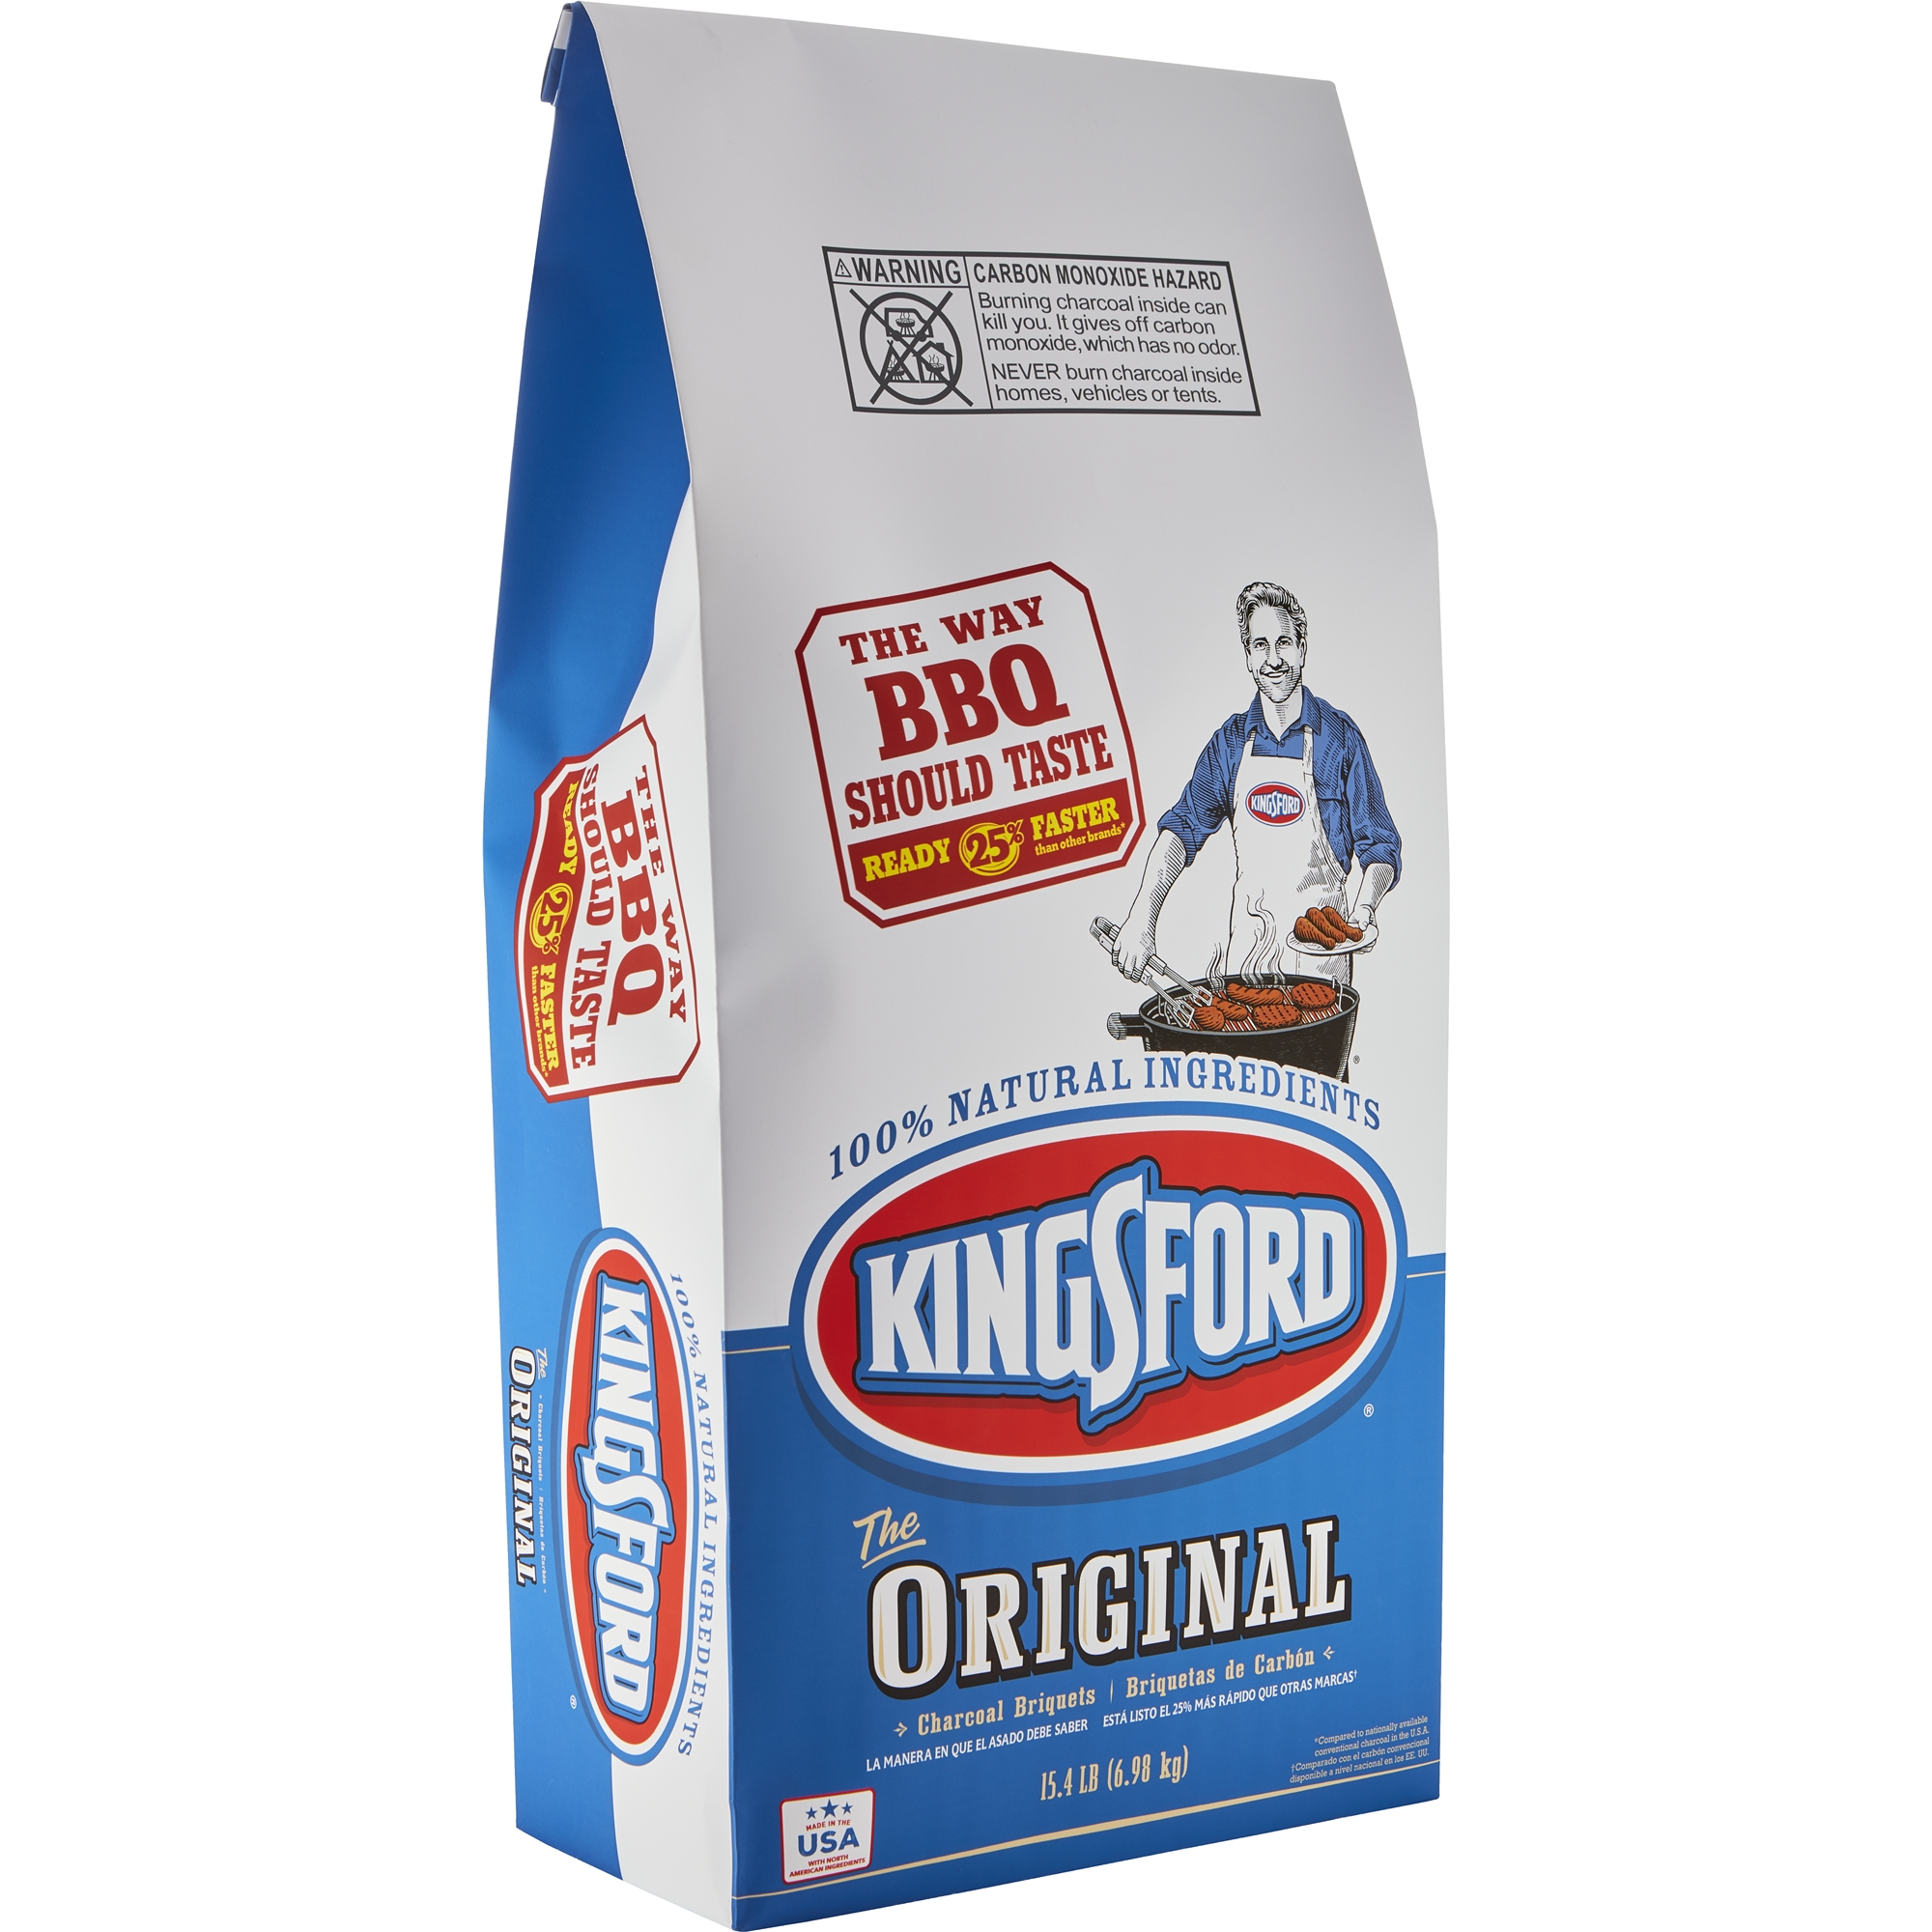 <mark>Kingsford</mark> Original <mark>Charcoal</mark> Briquettes, 15.4 lb Bag